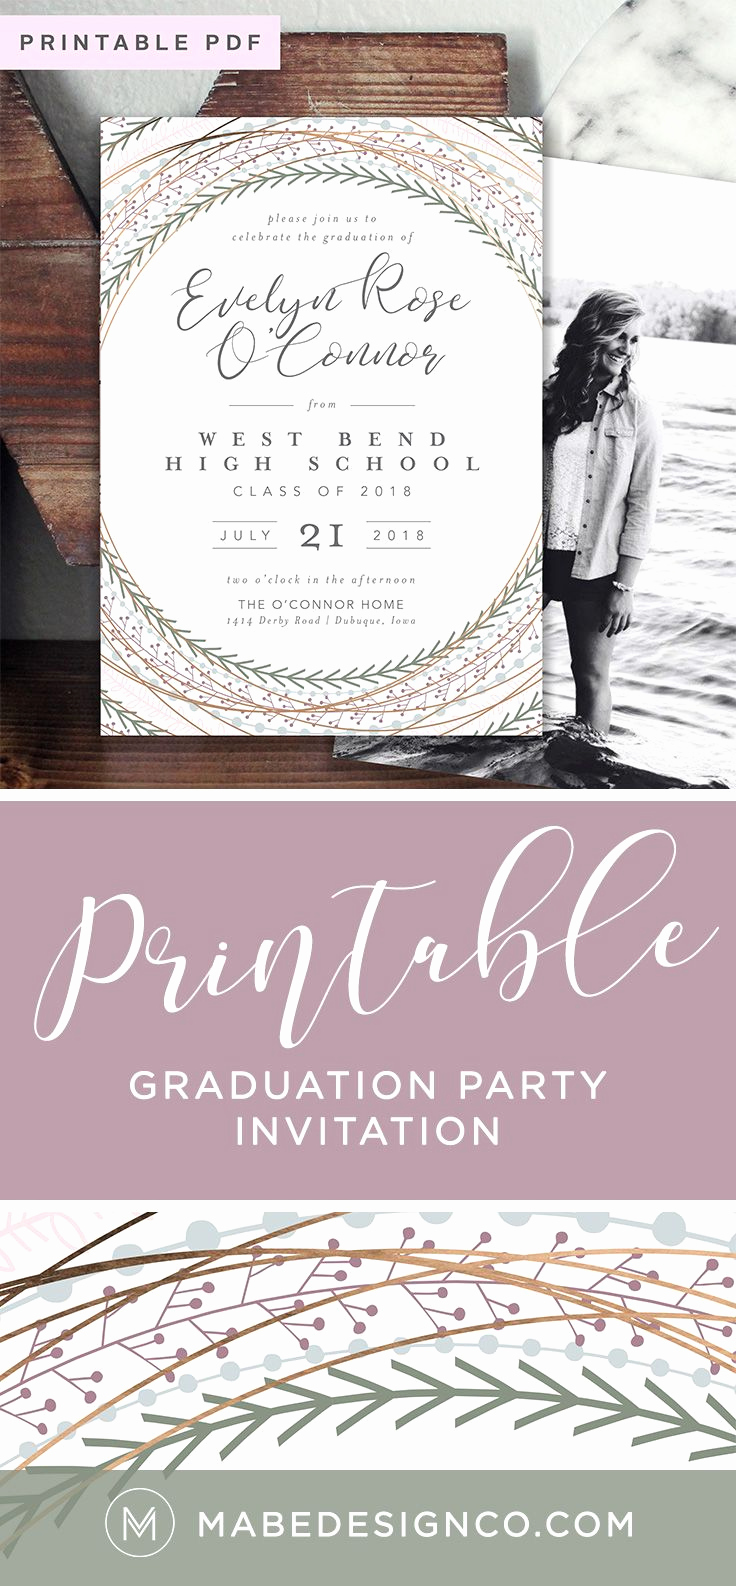 Graduation Commencement Invitation Wording Fresh Best 25 Graduation Invitation Wording Ideas On Pinterest